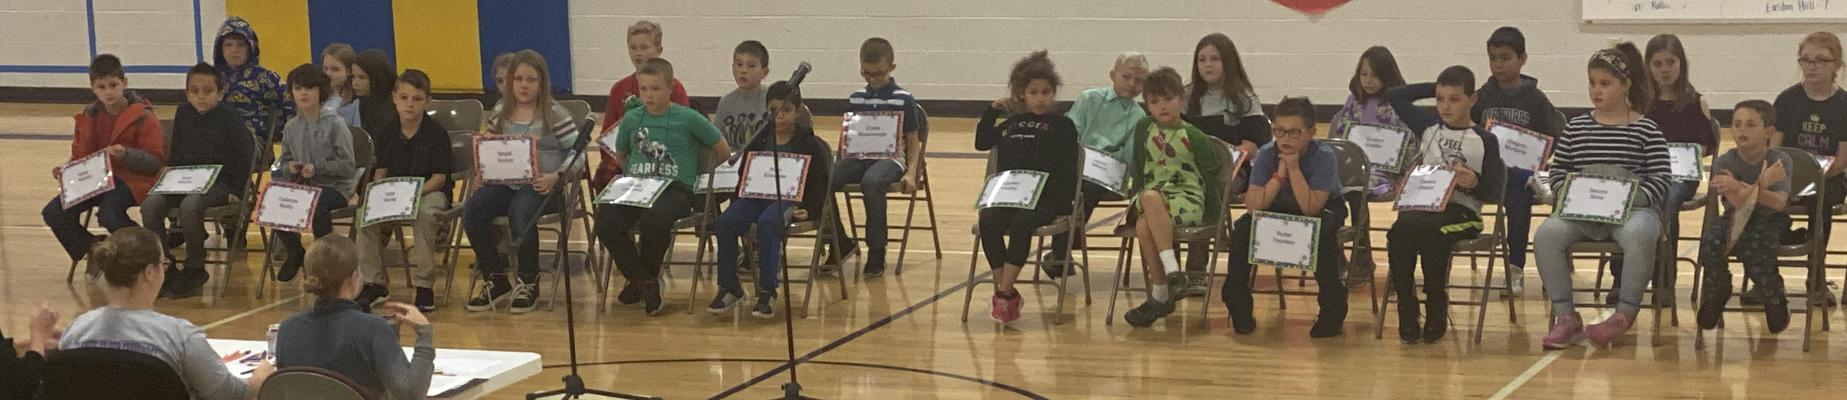 Students sitting in chairs on gym floor, participating in the spelling bee